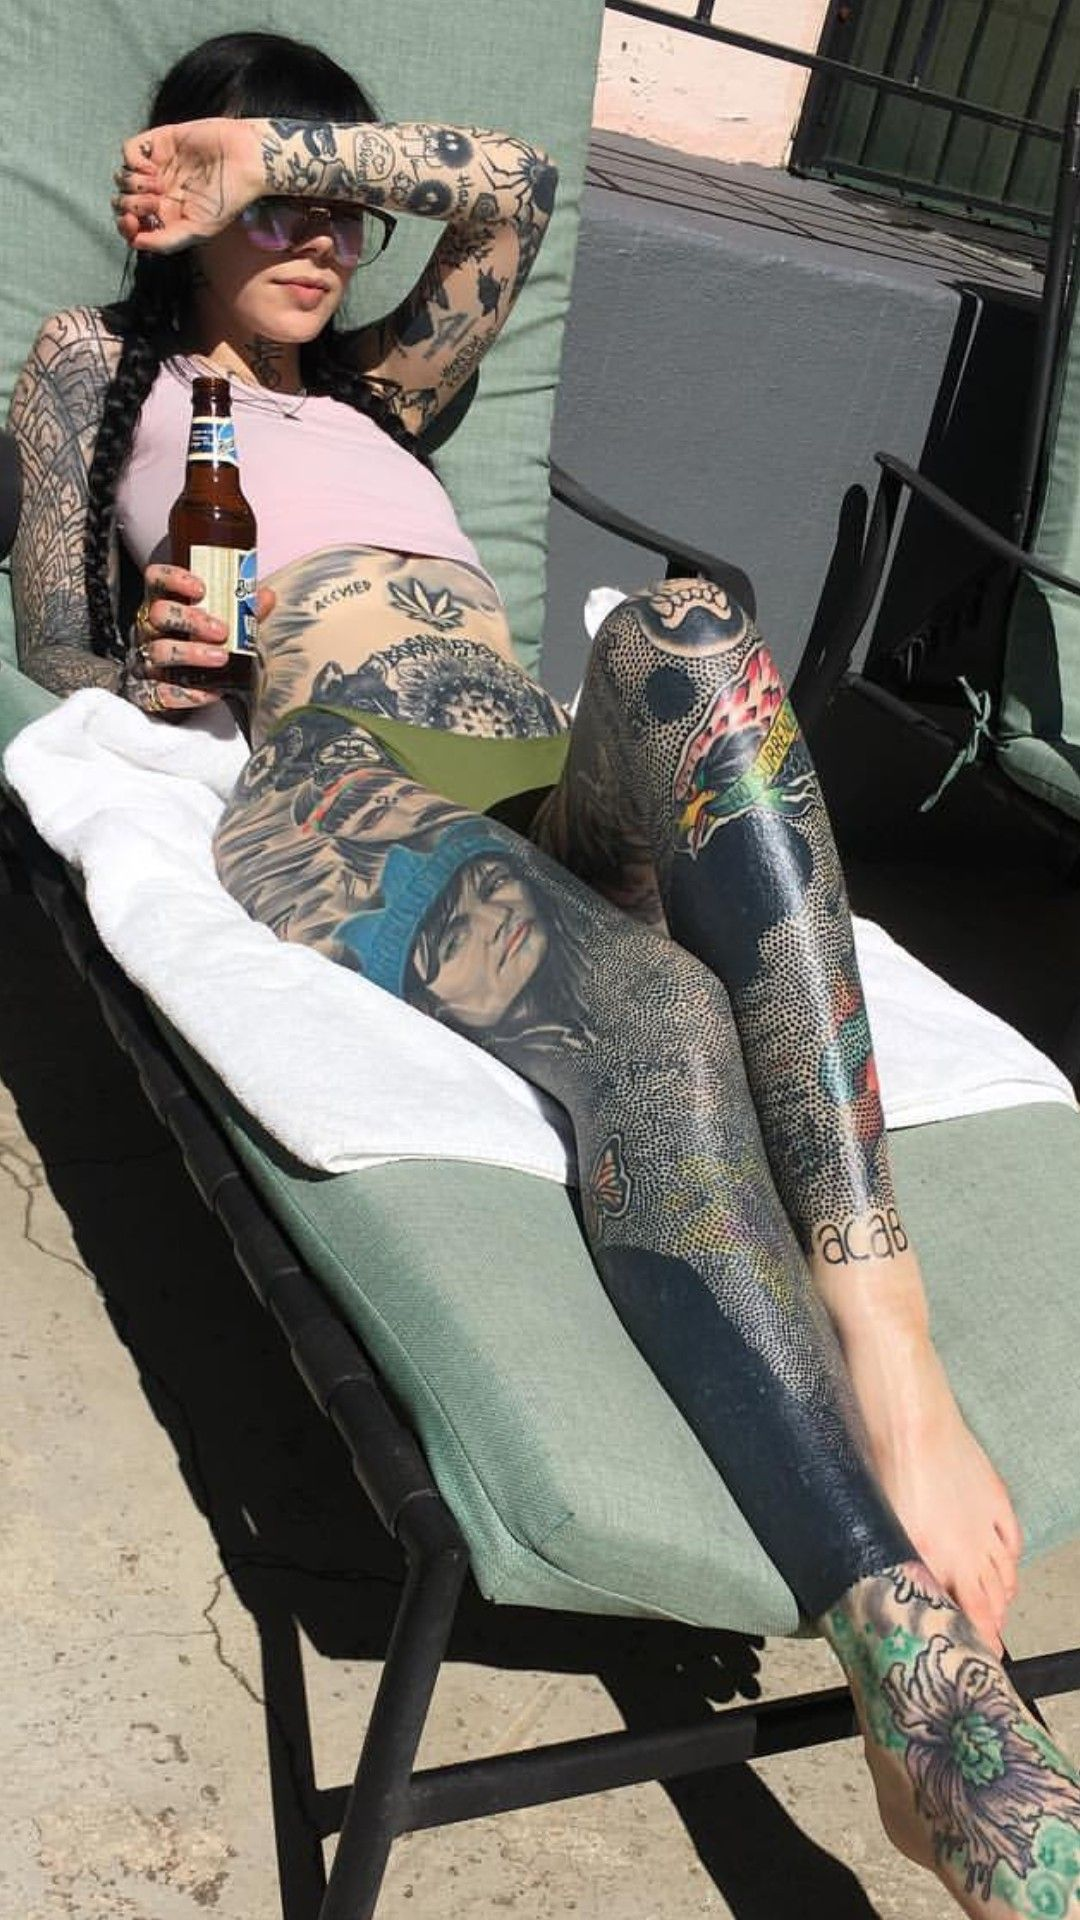 Silo Tattoos Incredible Body Art Masterpieces That Look: She Has Such An Incredible Body And Fantastic Artwork A